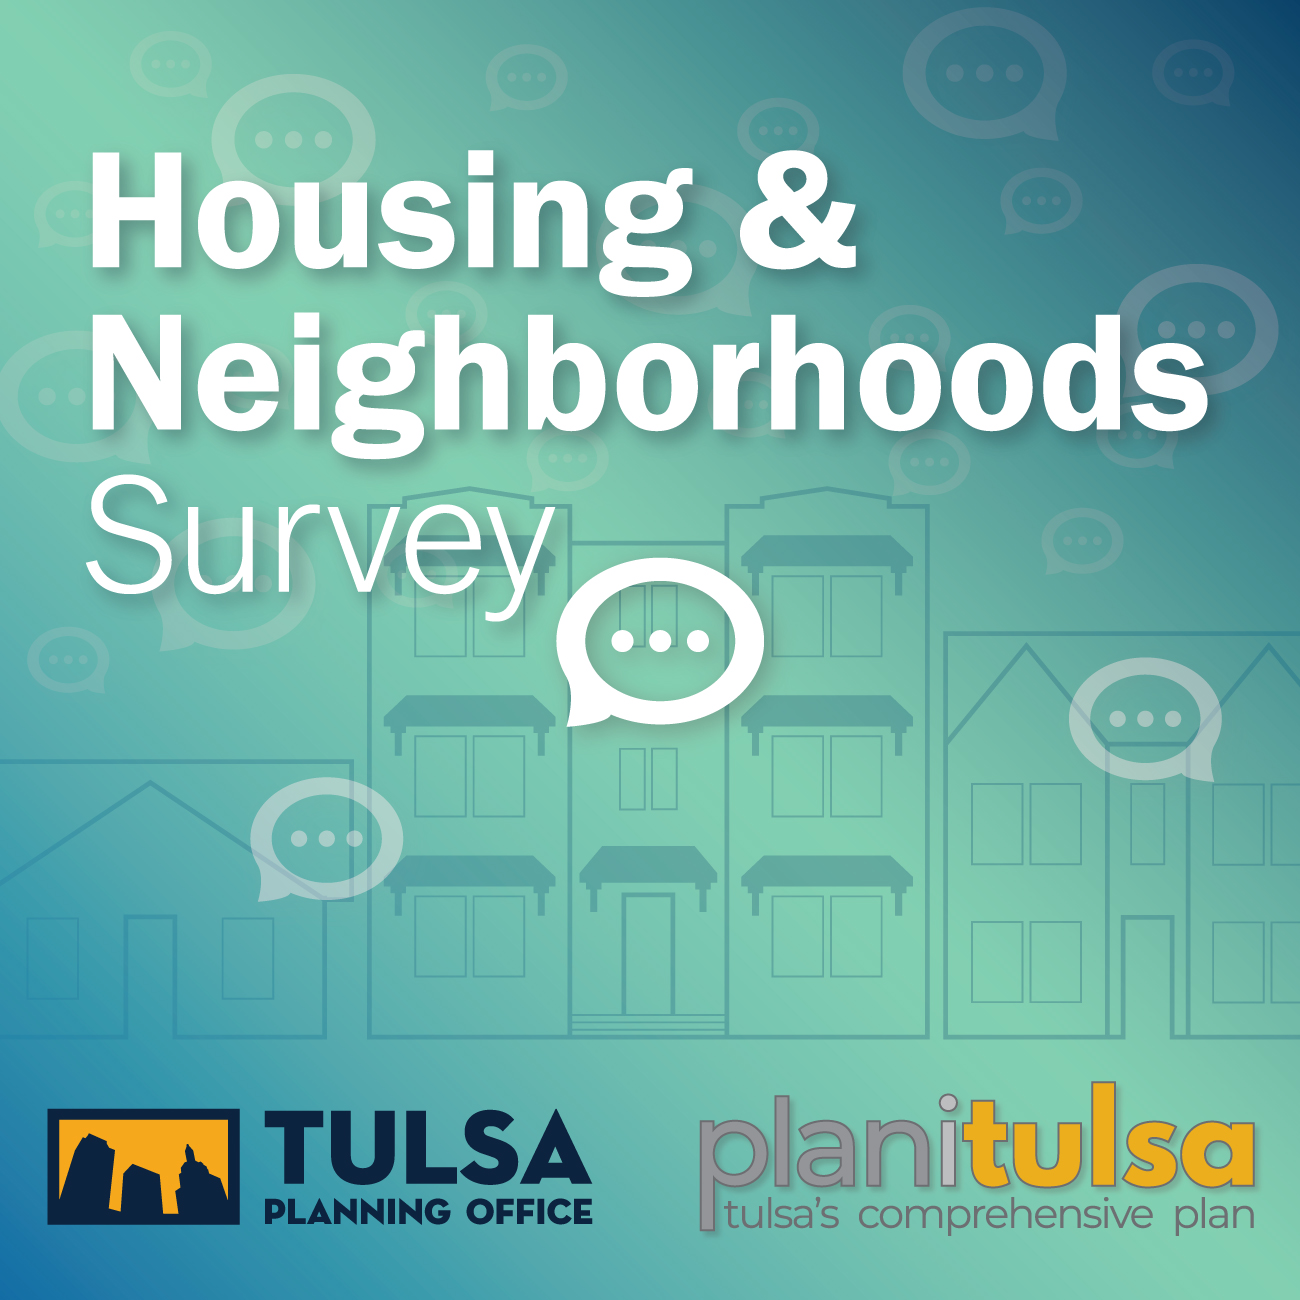 Click to register for a community meeting on Jan. 7 to discuss the results of the housing & neighborhoods survey and talk about infill development.